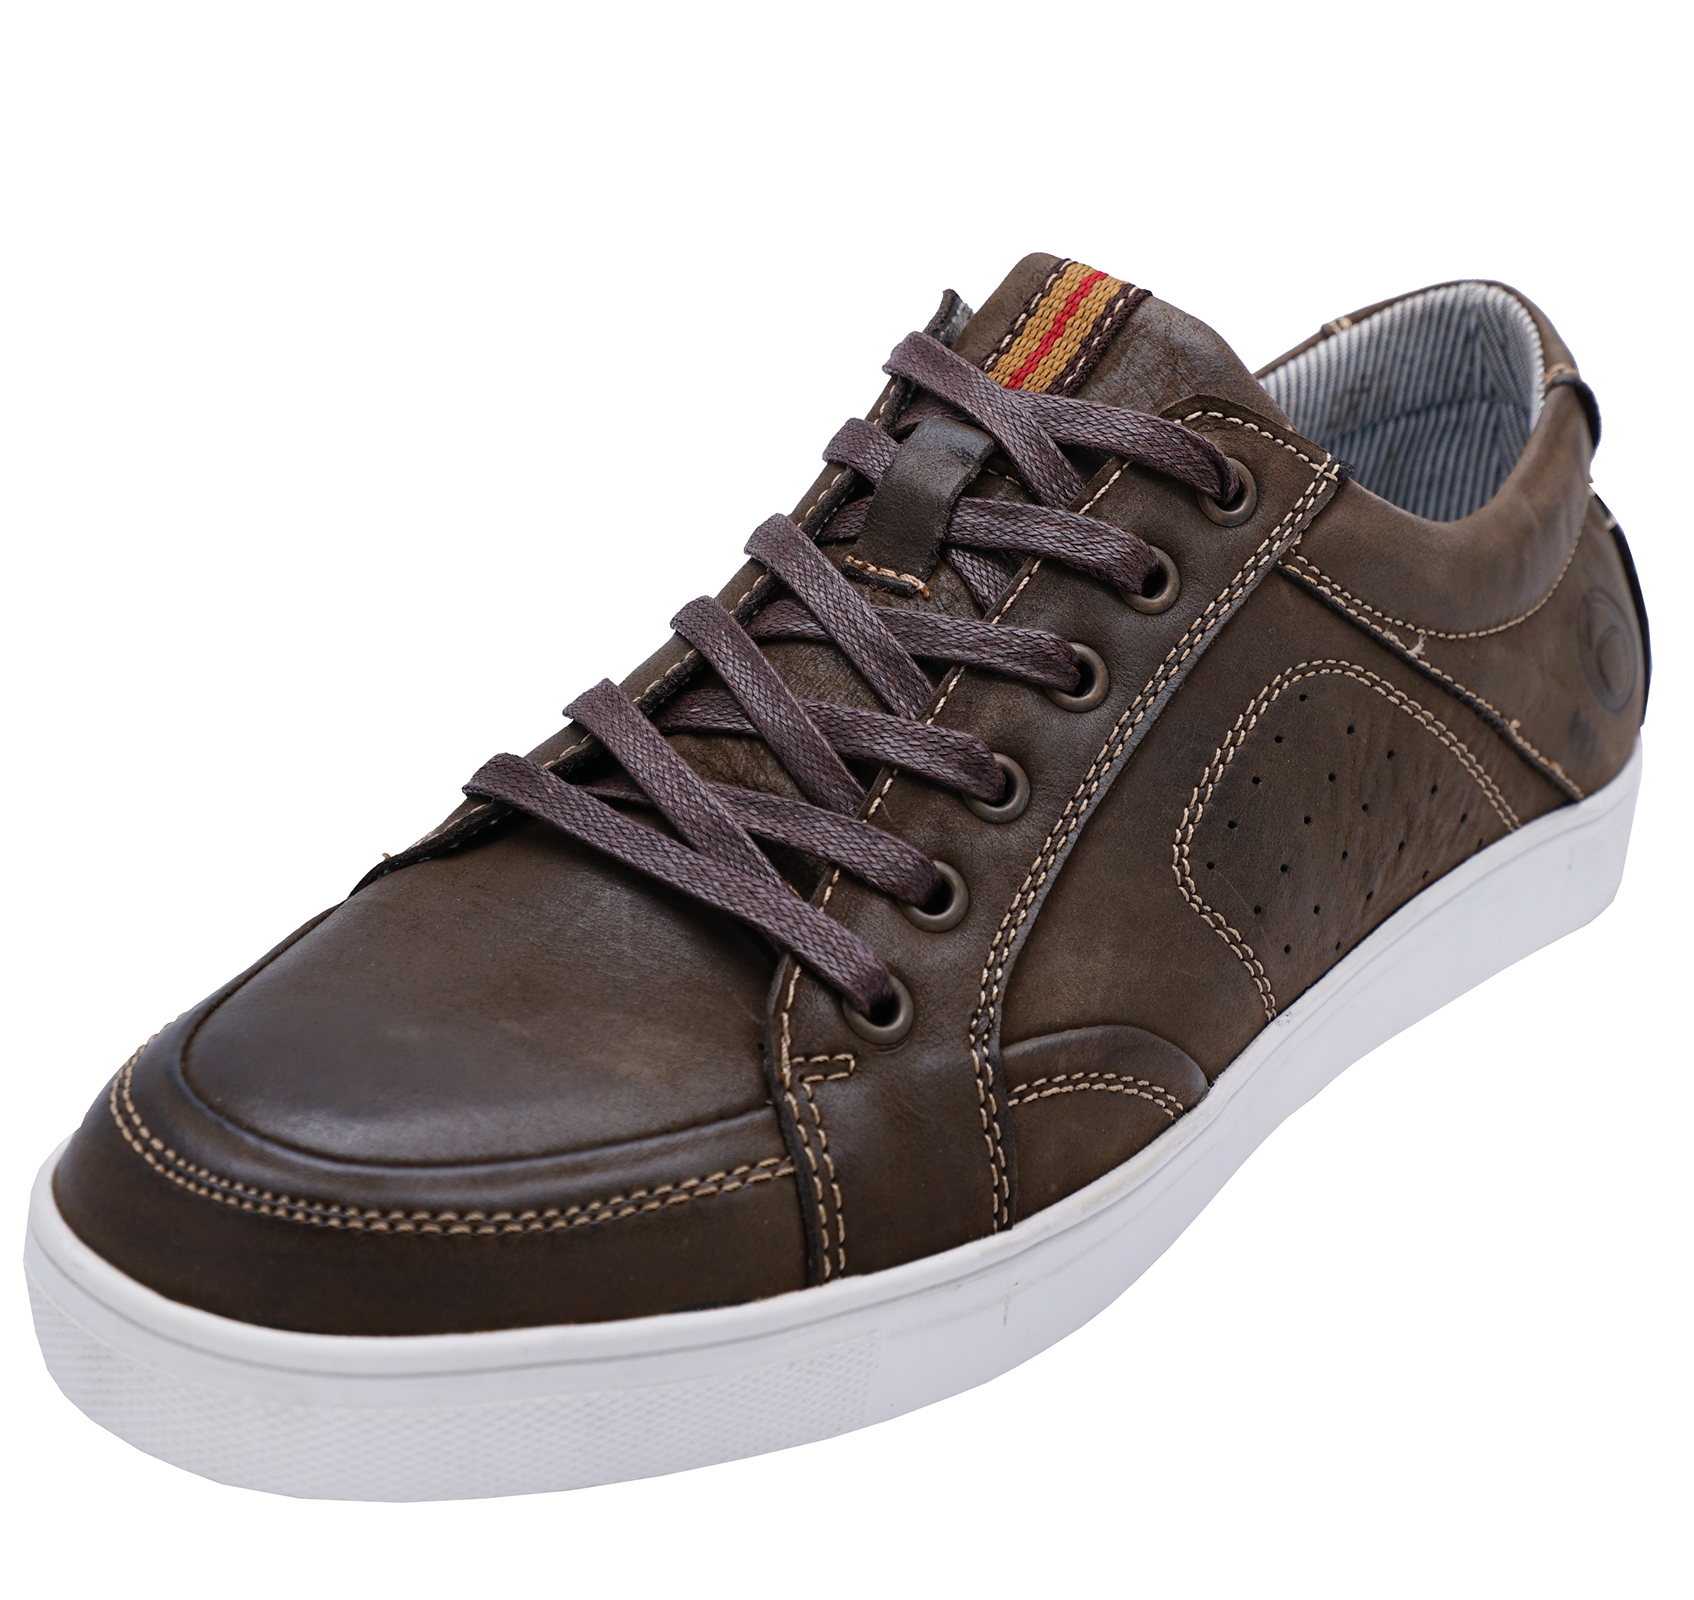 MENS-BROWN-LEATHER-COTSWOLD-LACE-UP-CASUAL-TRAINERS-PUMPS-COMFY-SHOES-UK-10-12 thumbnail 3